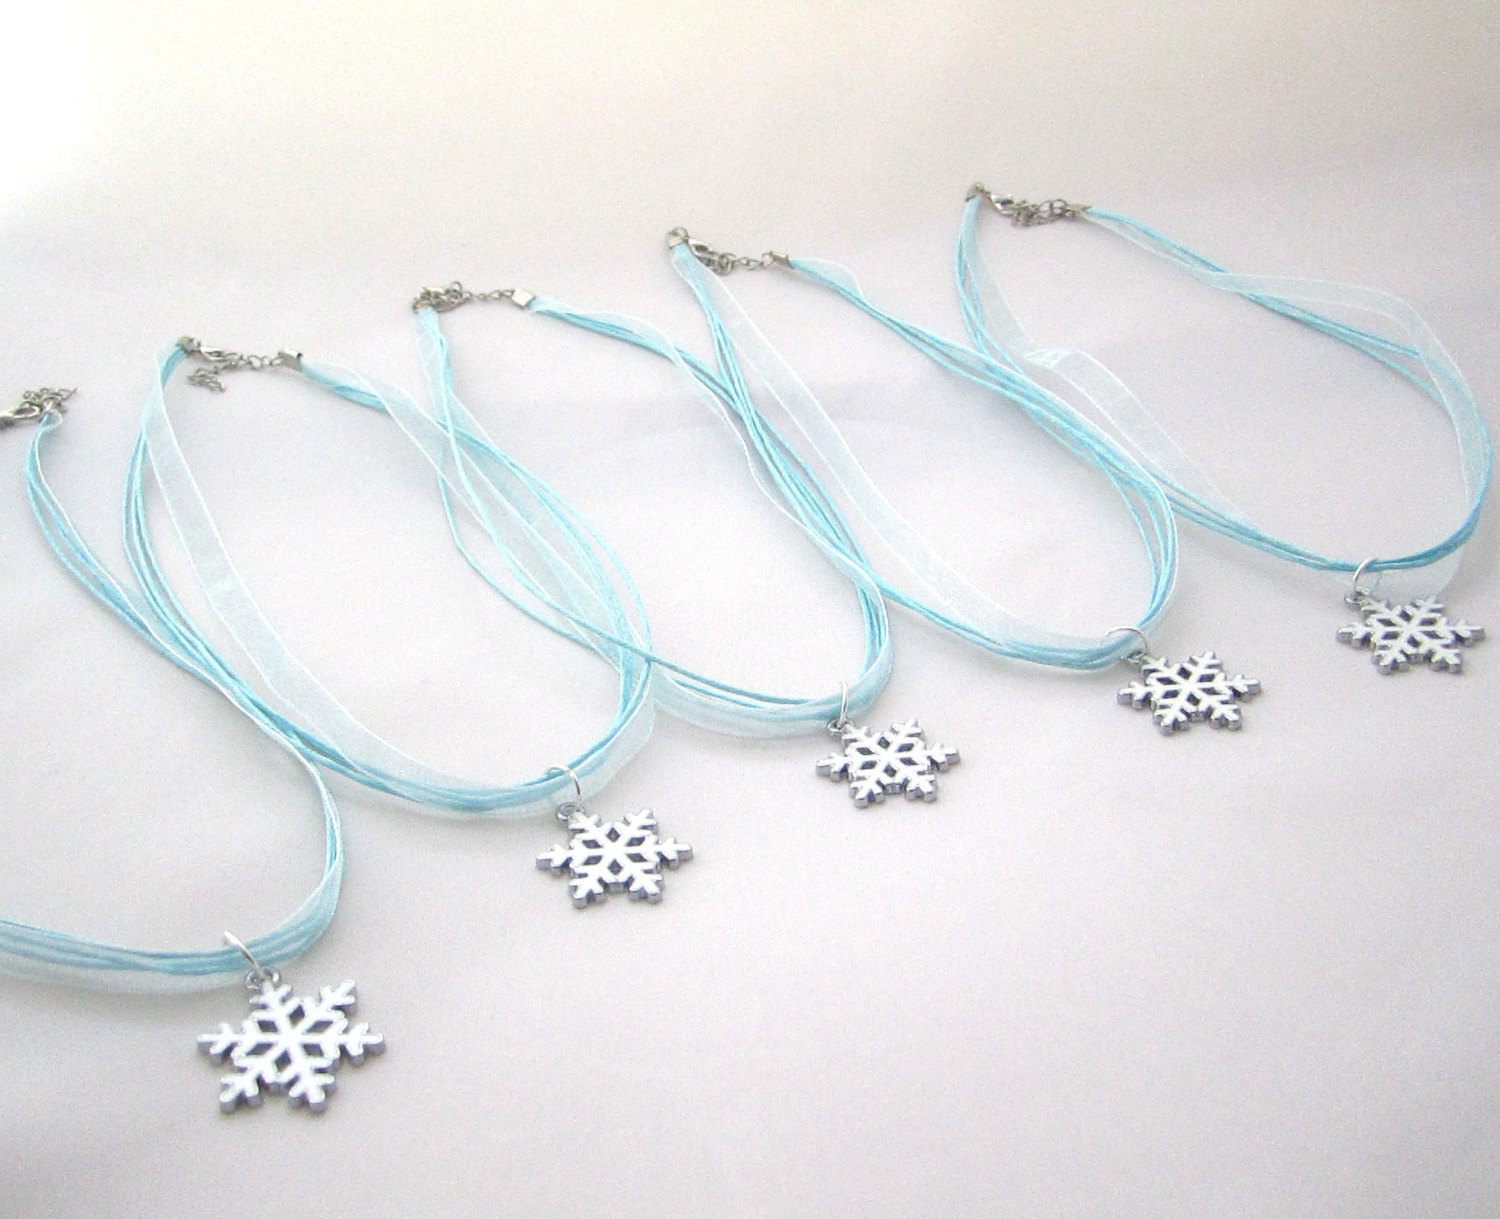 Snowflake charm necklaces from Etsy shop Favor Wrap